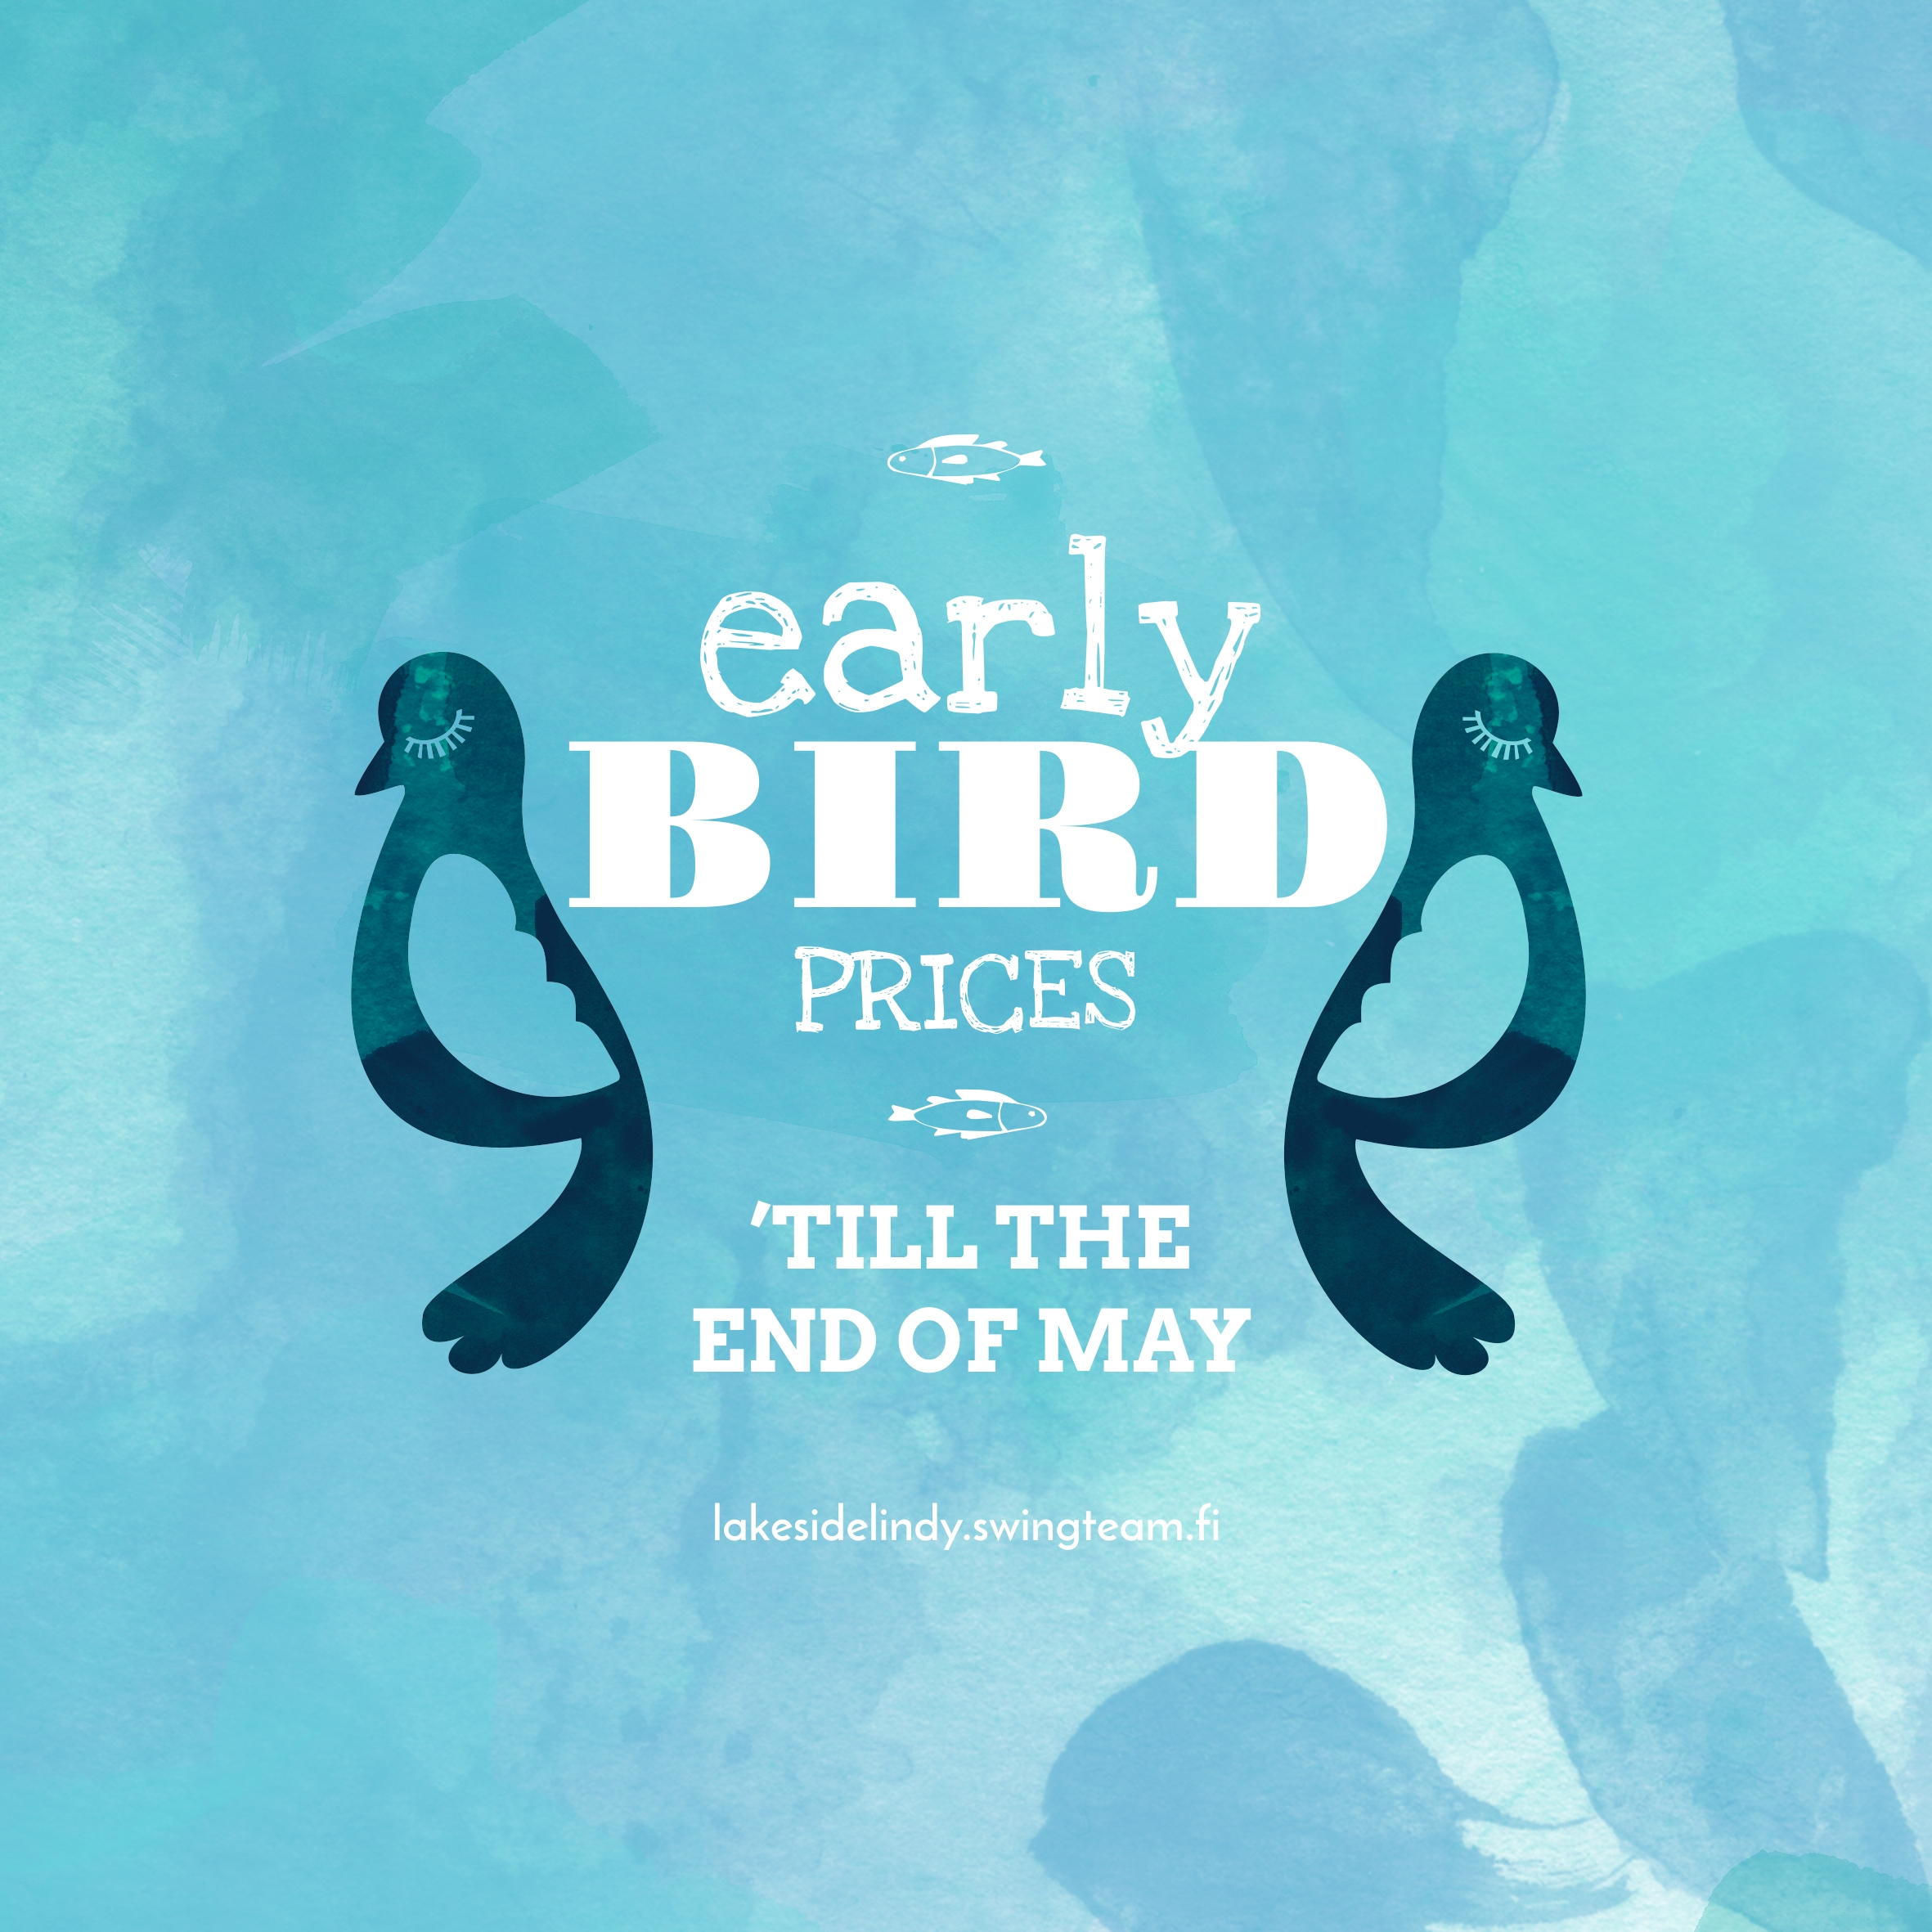 Early Bird Prices